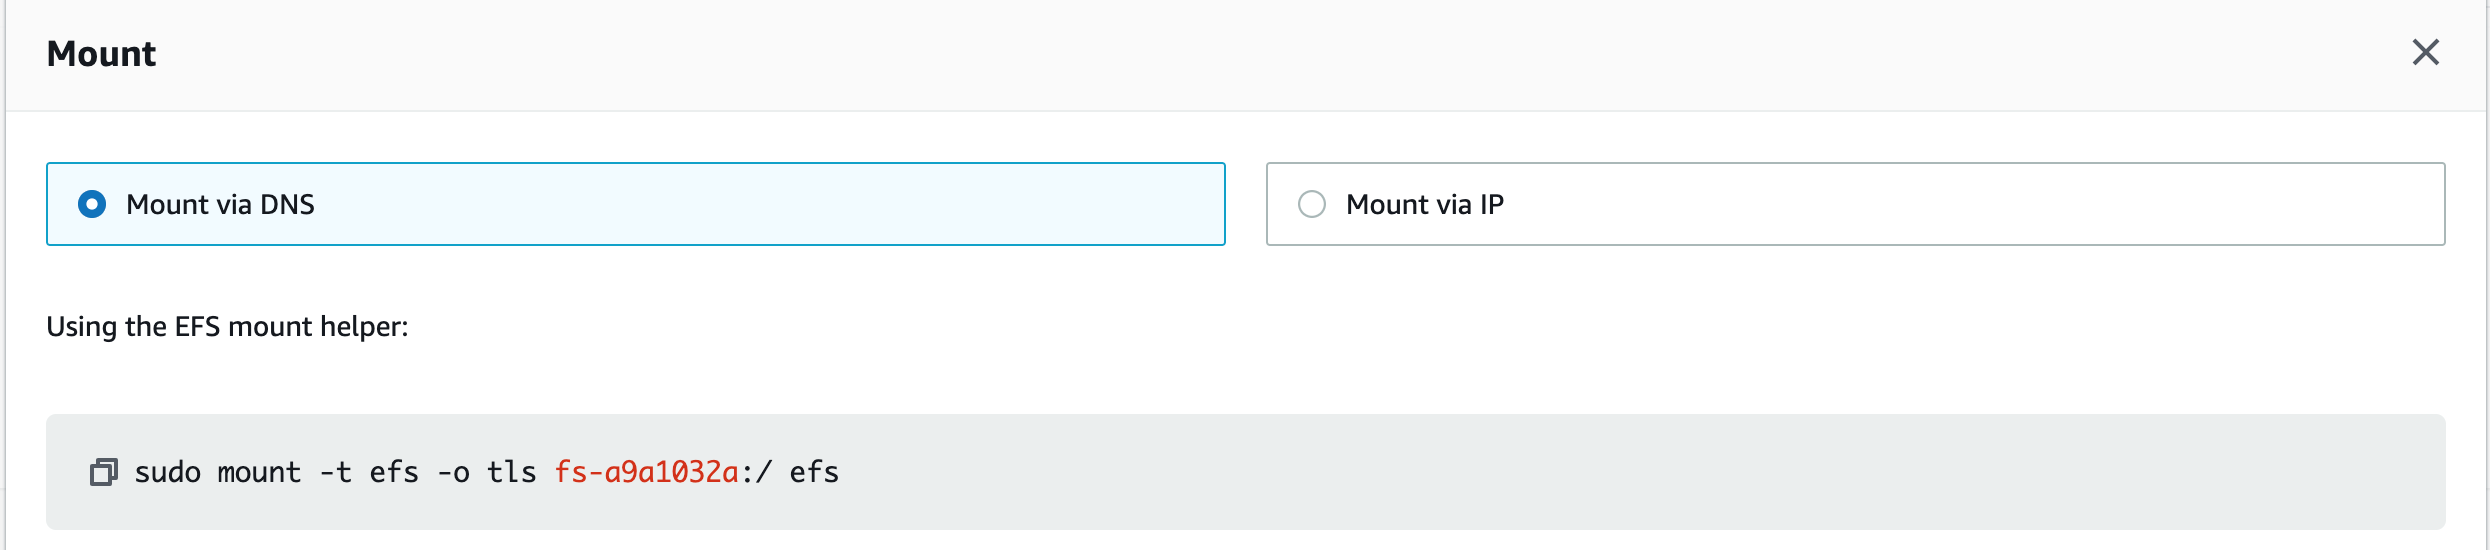 Simpler to grab the mount command you need to mount the file system to your clients. Select Mount via DNS or Mount via IP and provide a mount helper